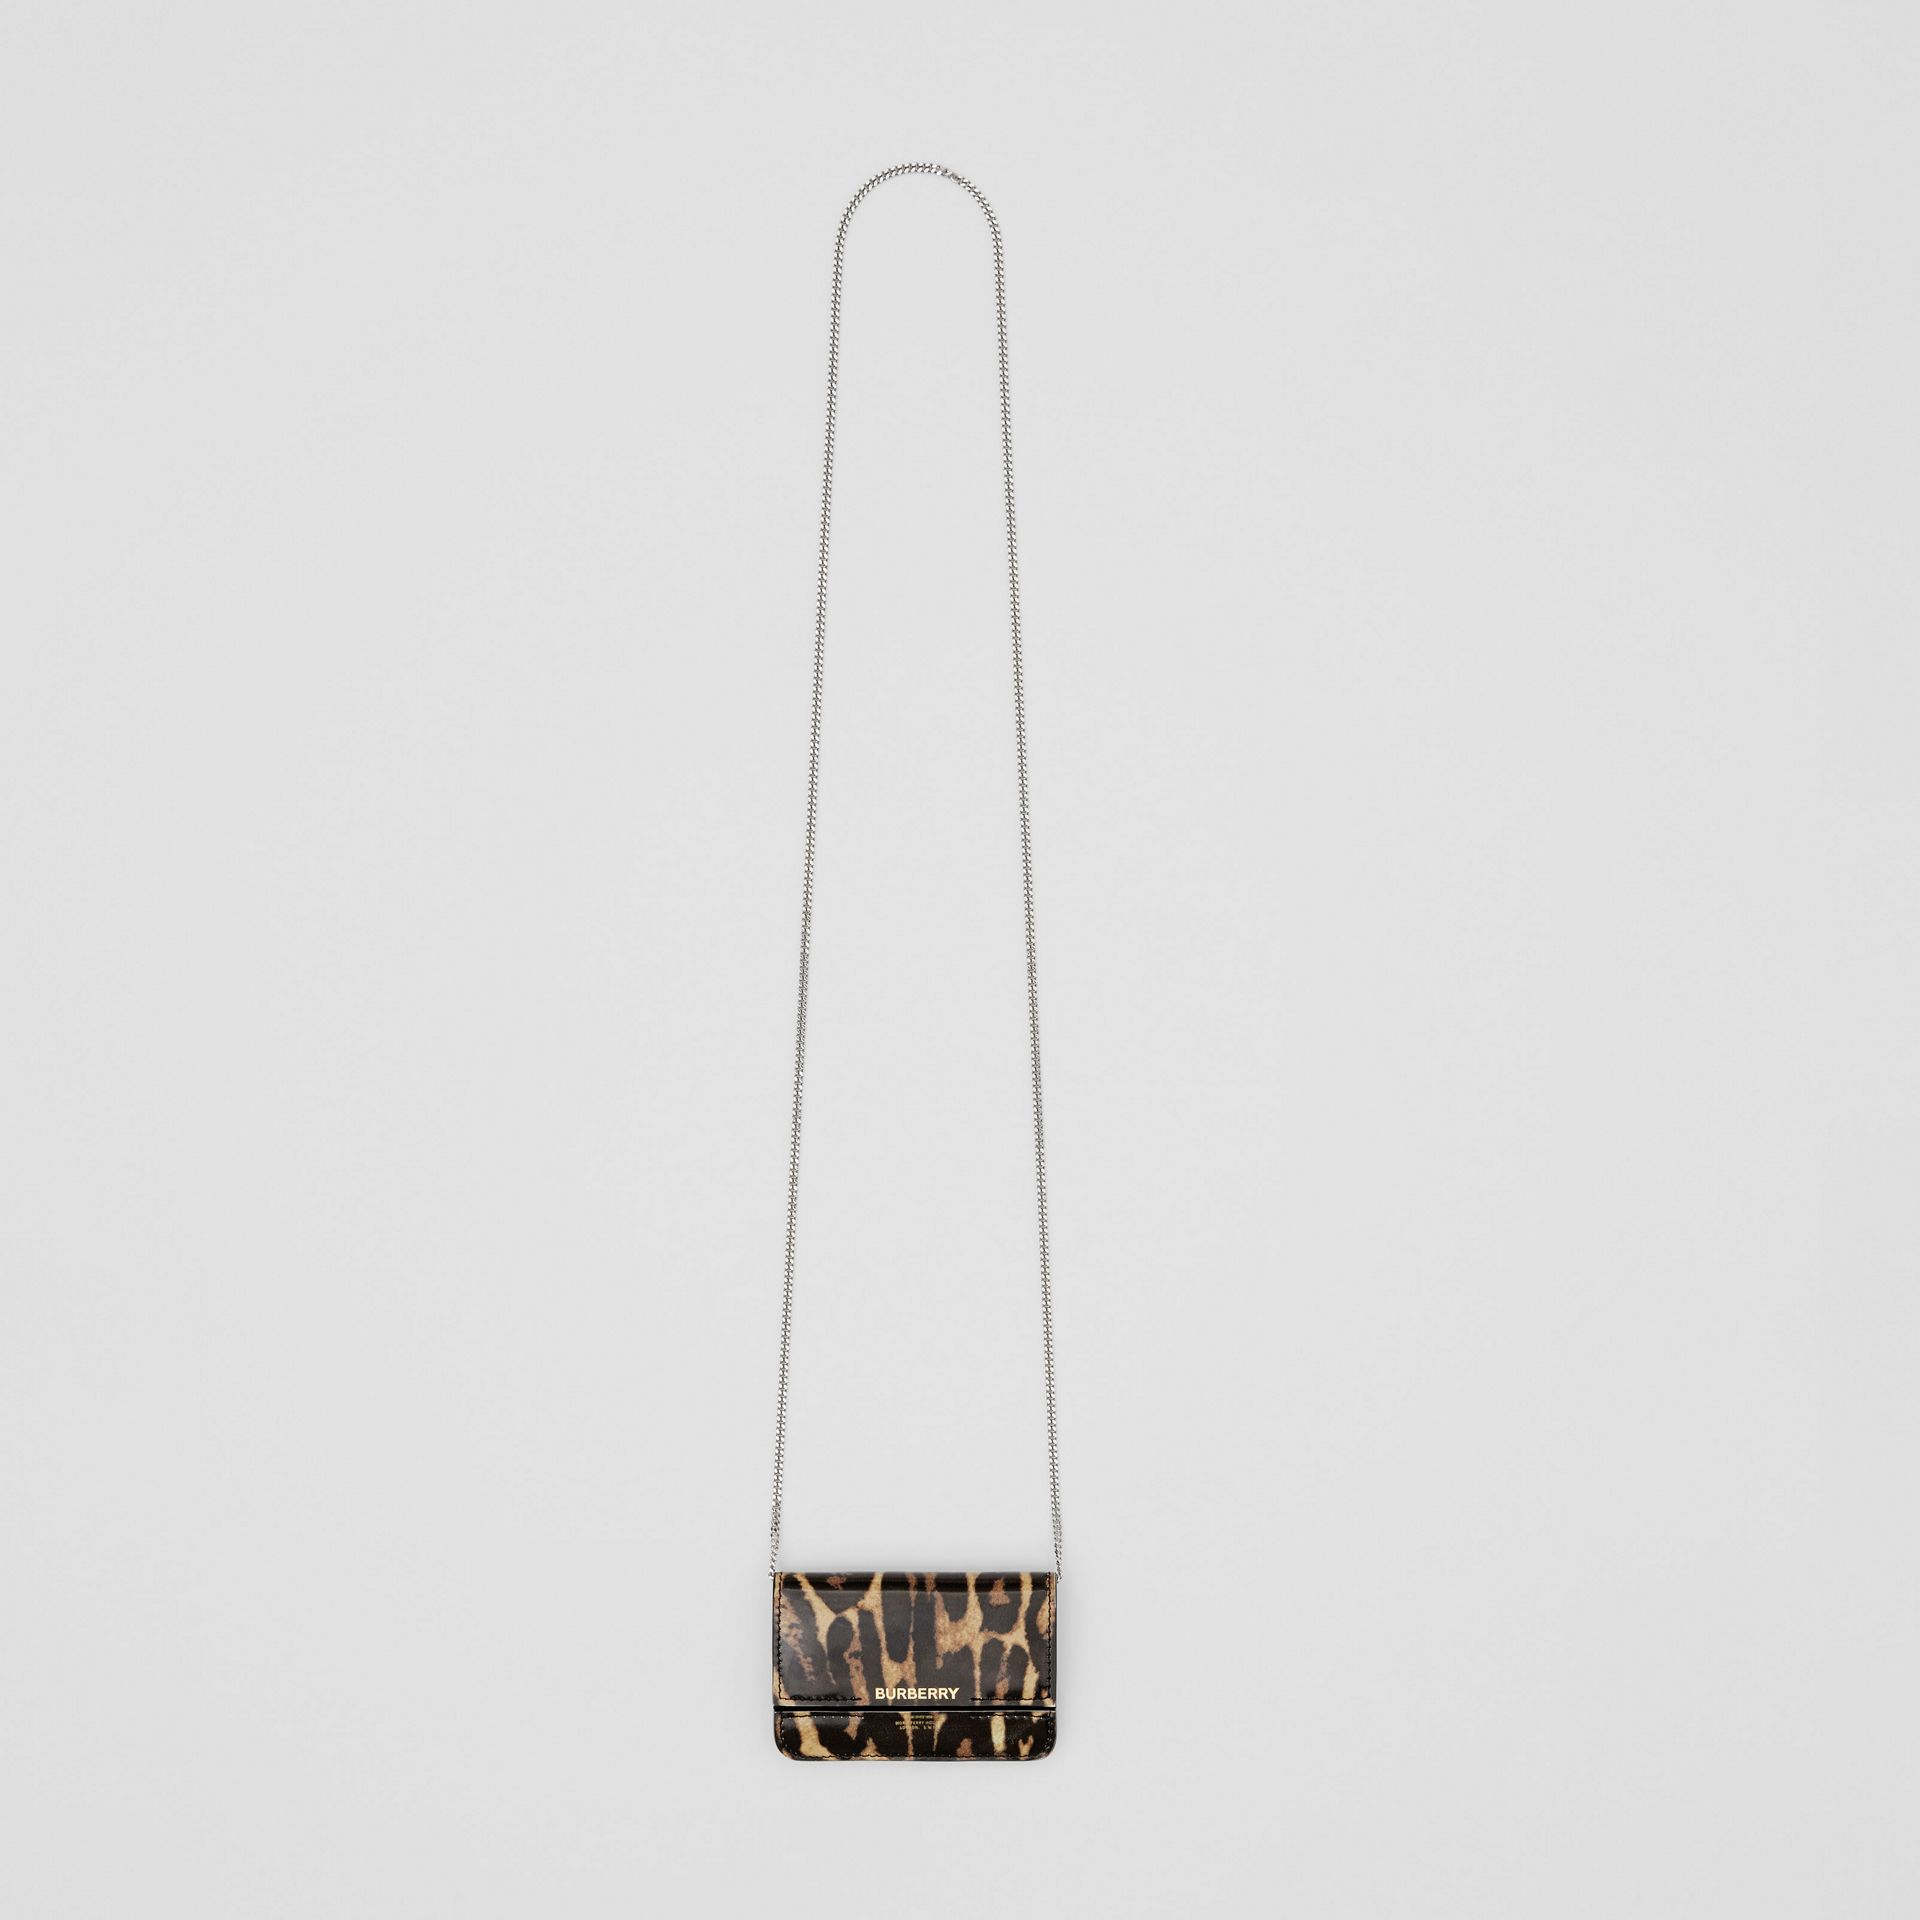 Leopard Print Leather Card Case with Chain Strap in Dark Mustard - Women | Burberry Hong Kong S.A.R - gallery image 3